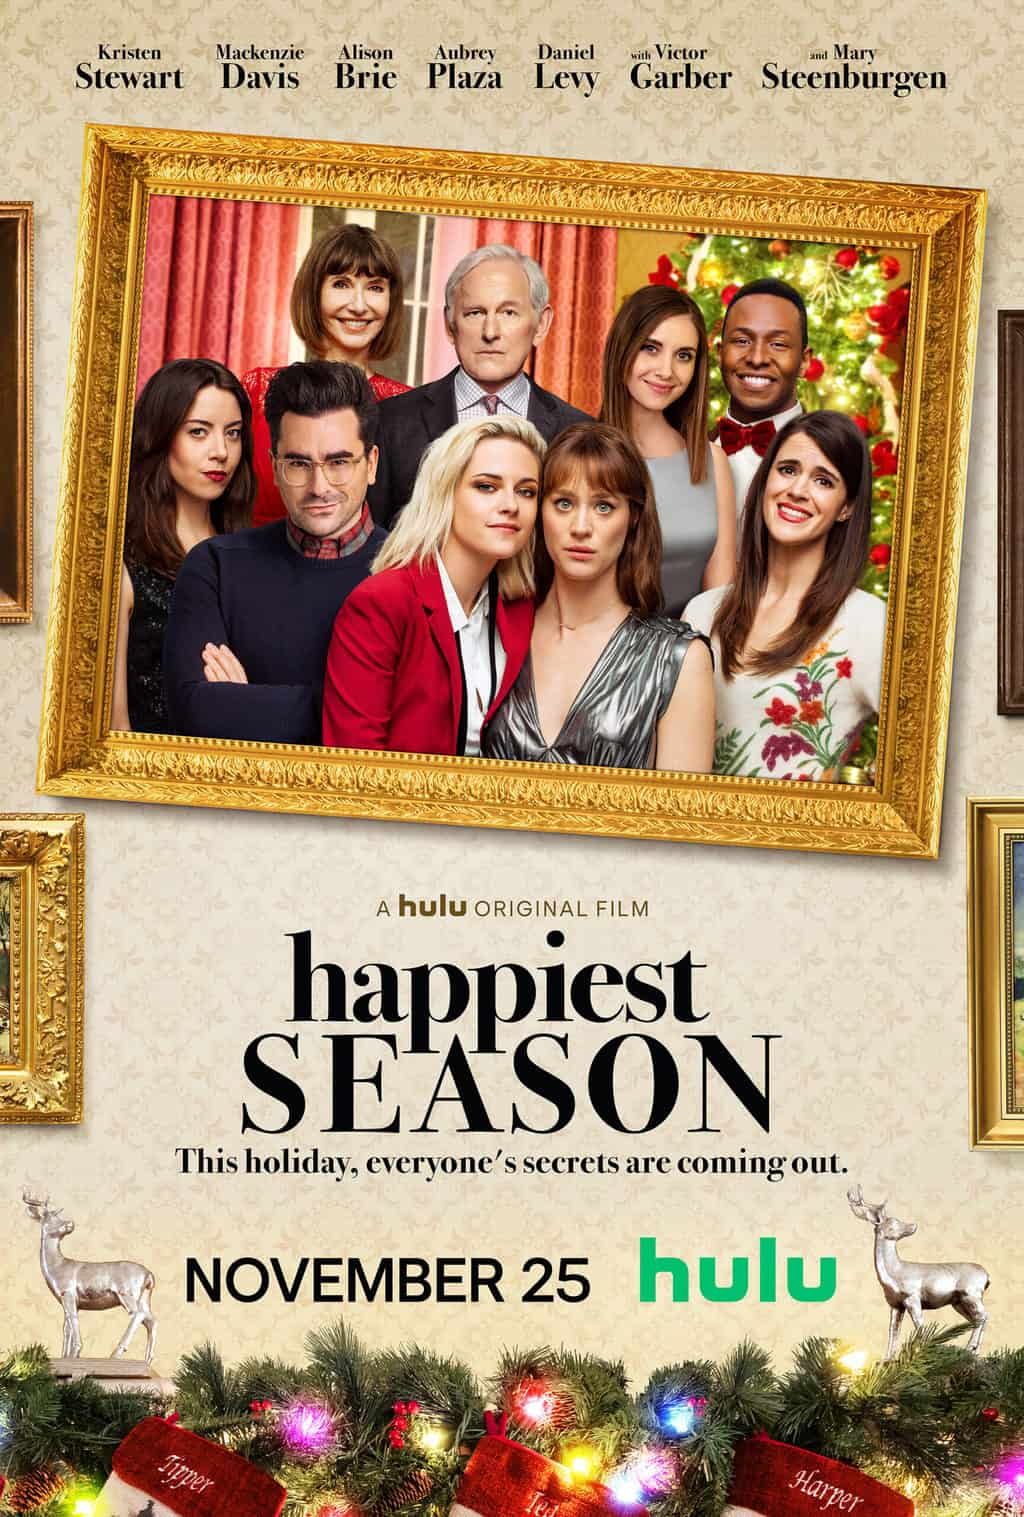 quotes from Happiest-Season-poster